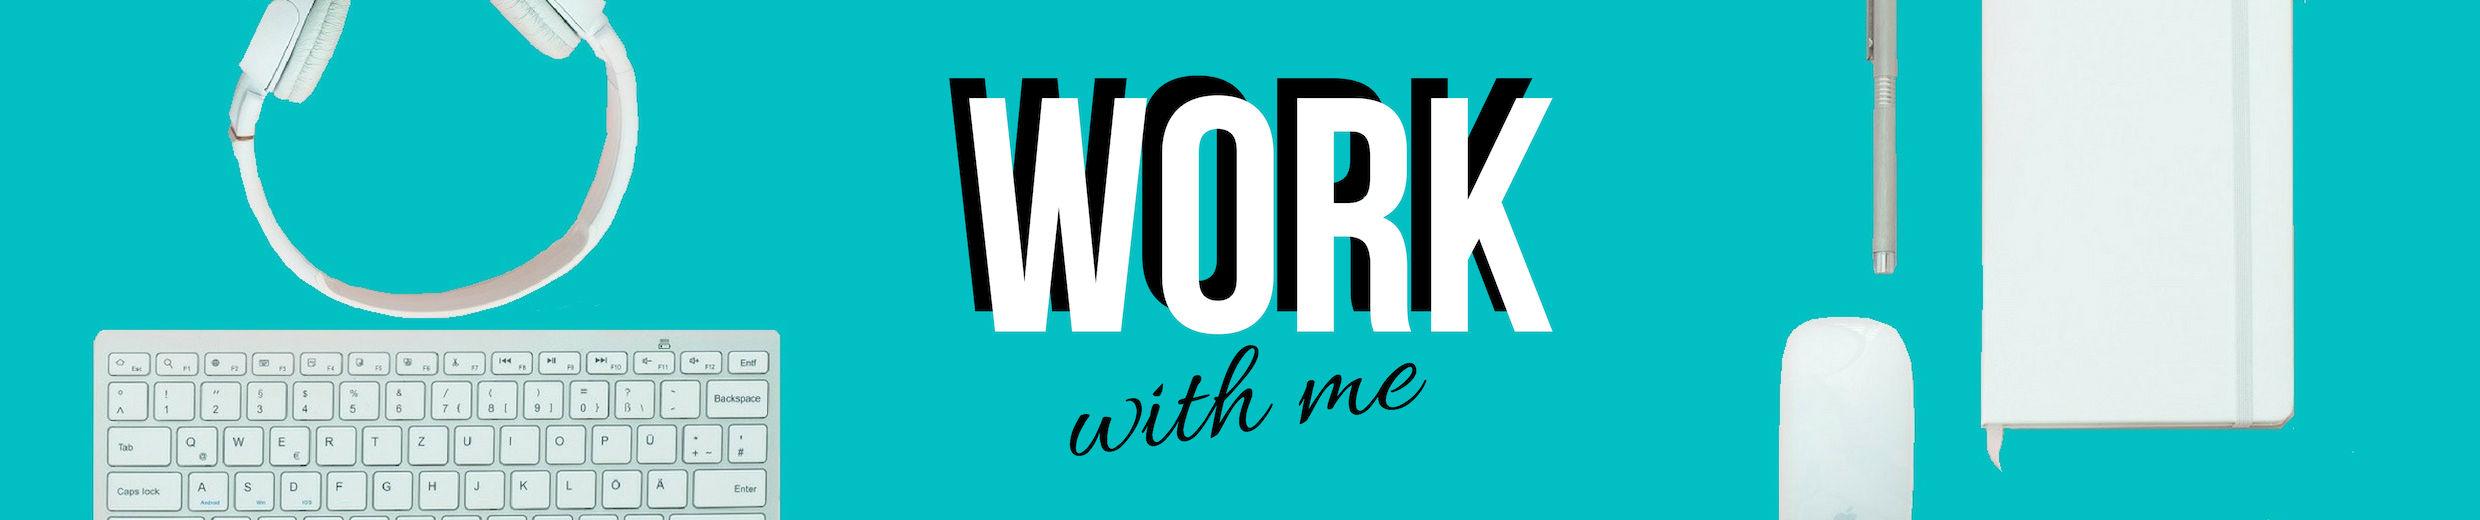 Work With Me - Content Marketing - Online Marketing - Social Media